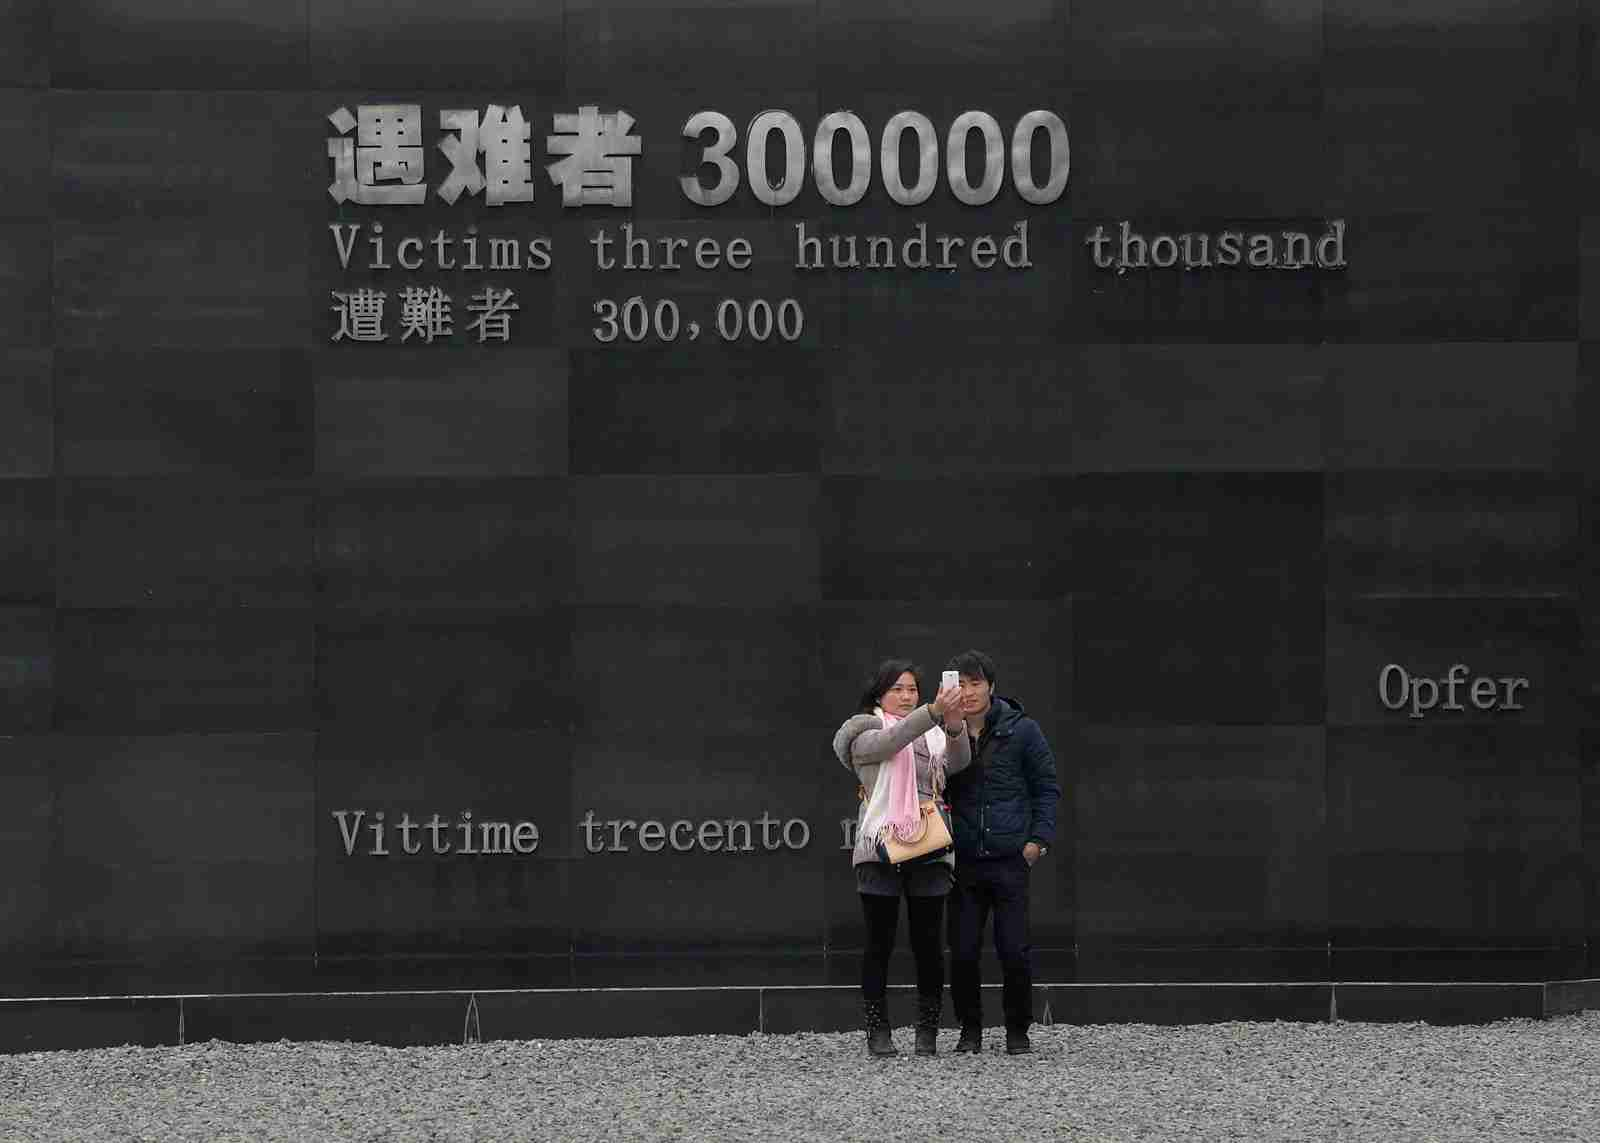 The Memorial Hall of the Victims of inn the Nanjing Massacre. (Photo by MARK RALSTON/AFP/Getty Images)